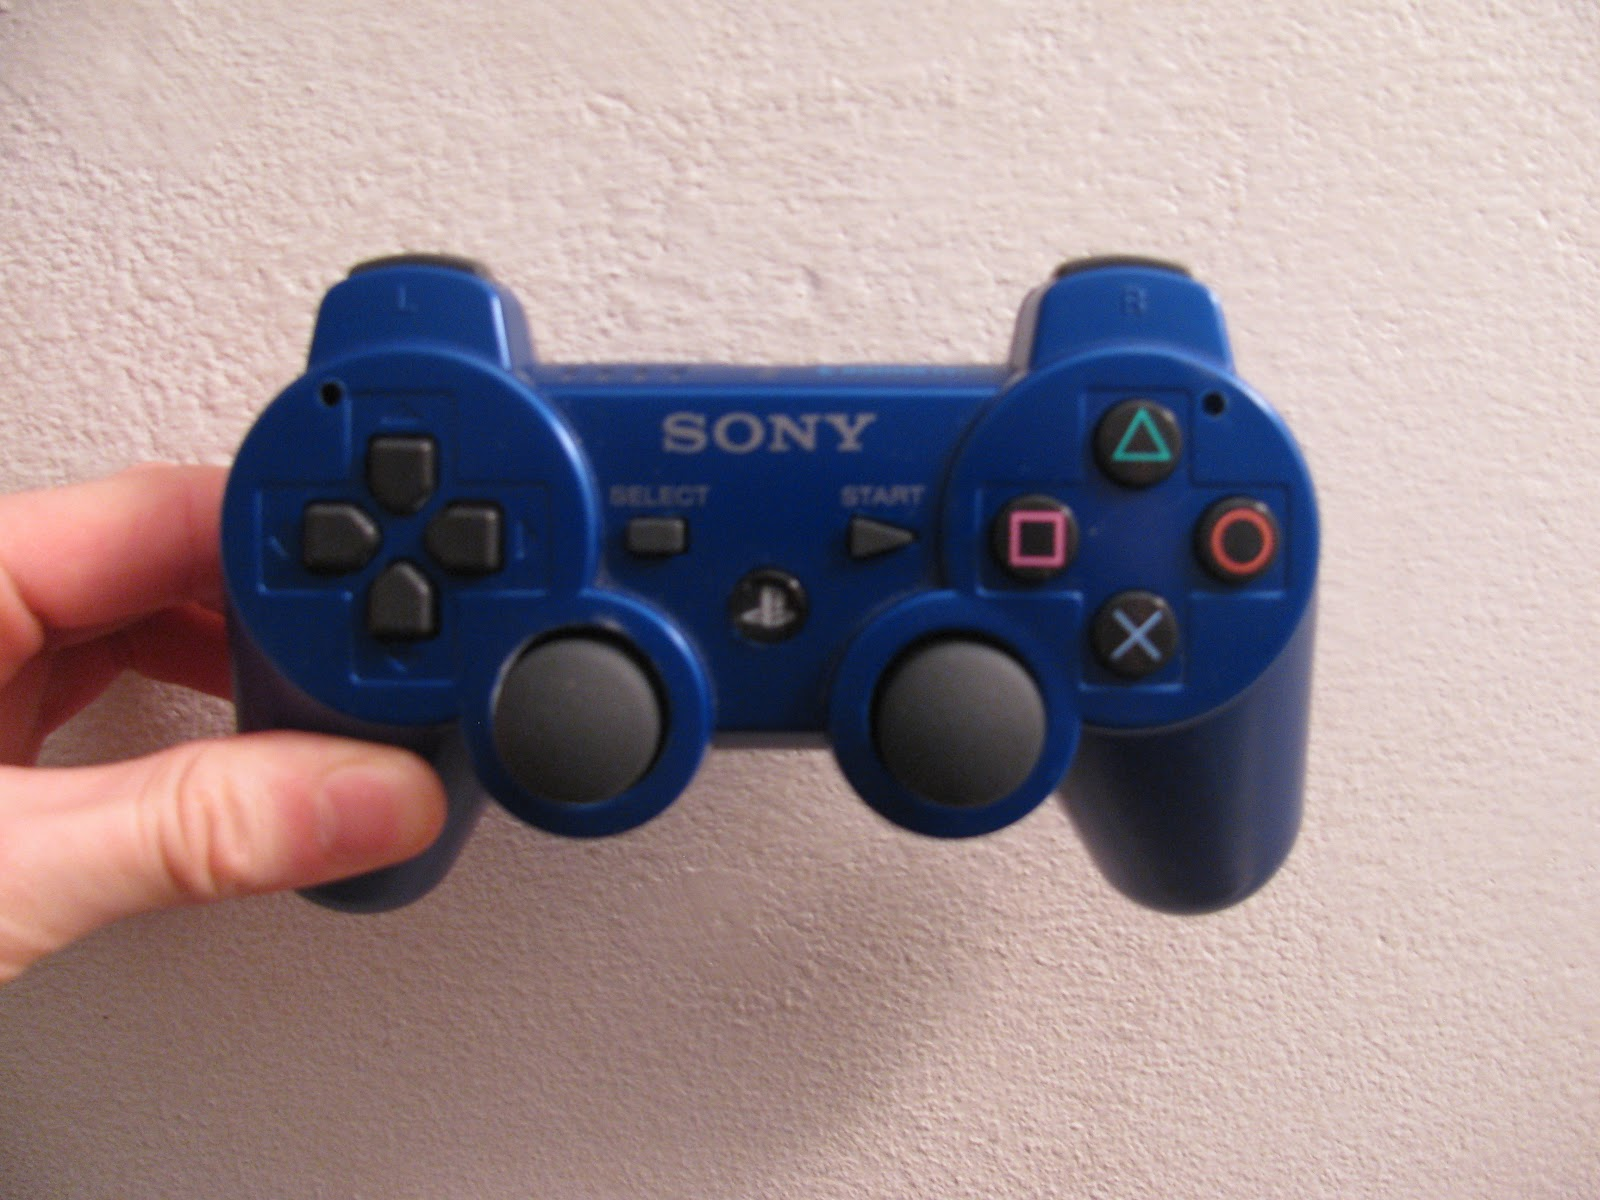 small ps3 controller